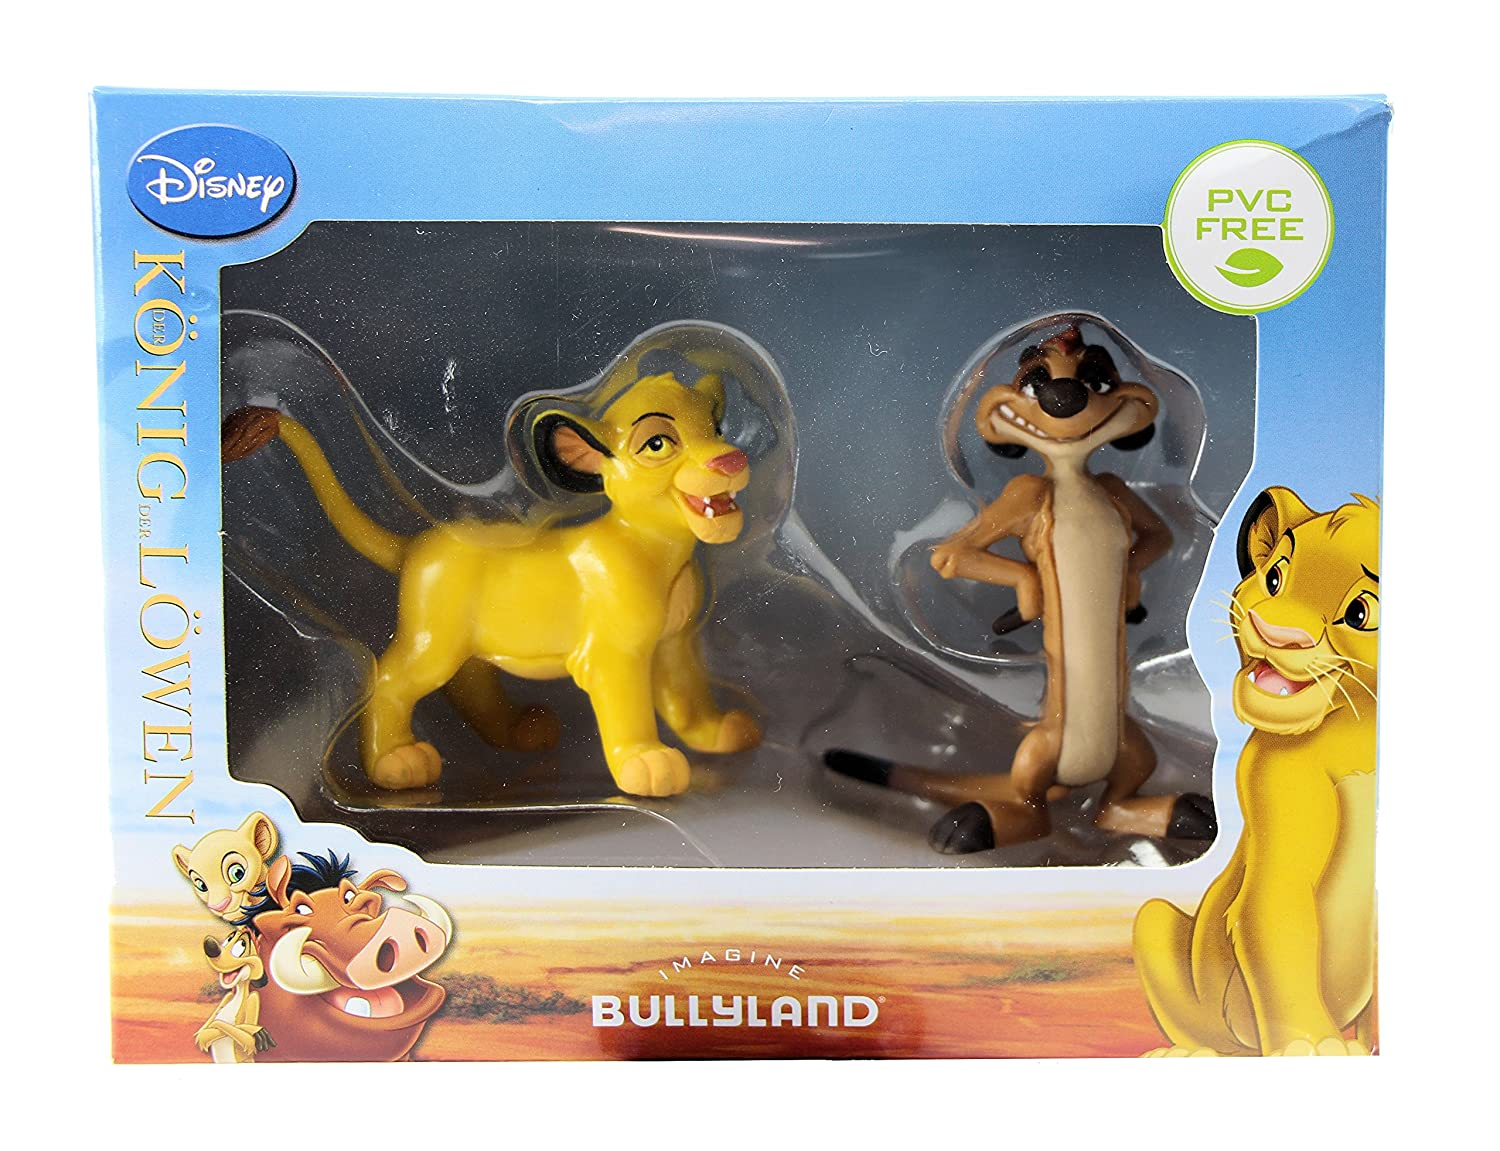 Bullyland Disney The Lion King Simba & Timon Figures Cake Toppers In Gift Box: Amazon.es: Juguetes y juegos